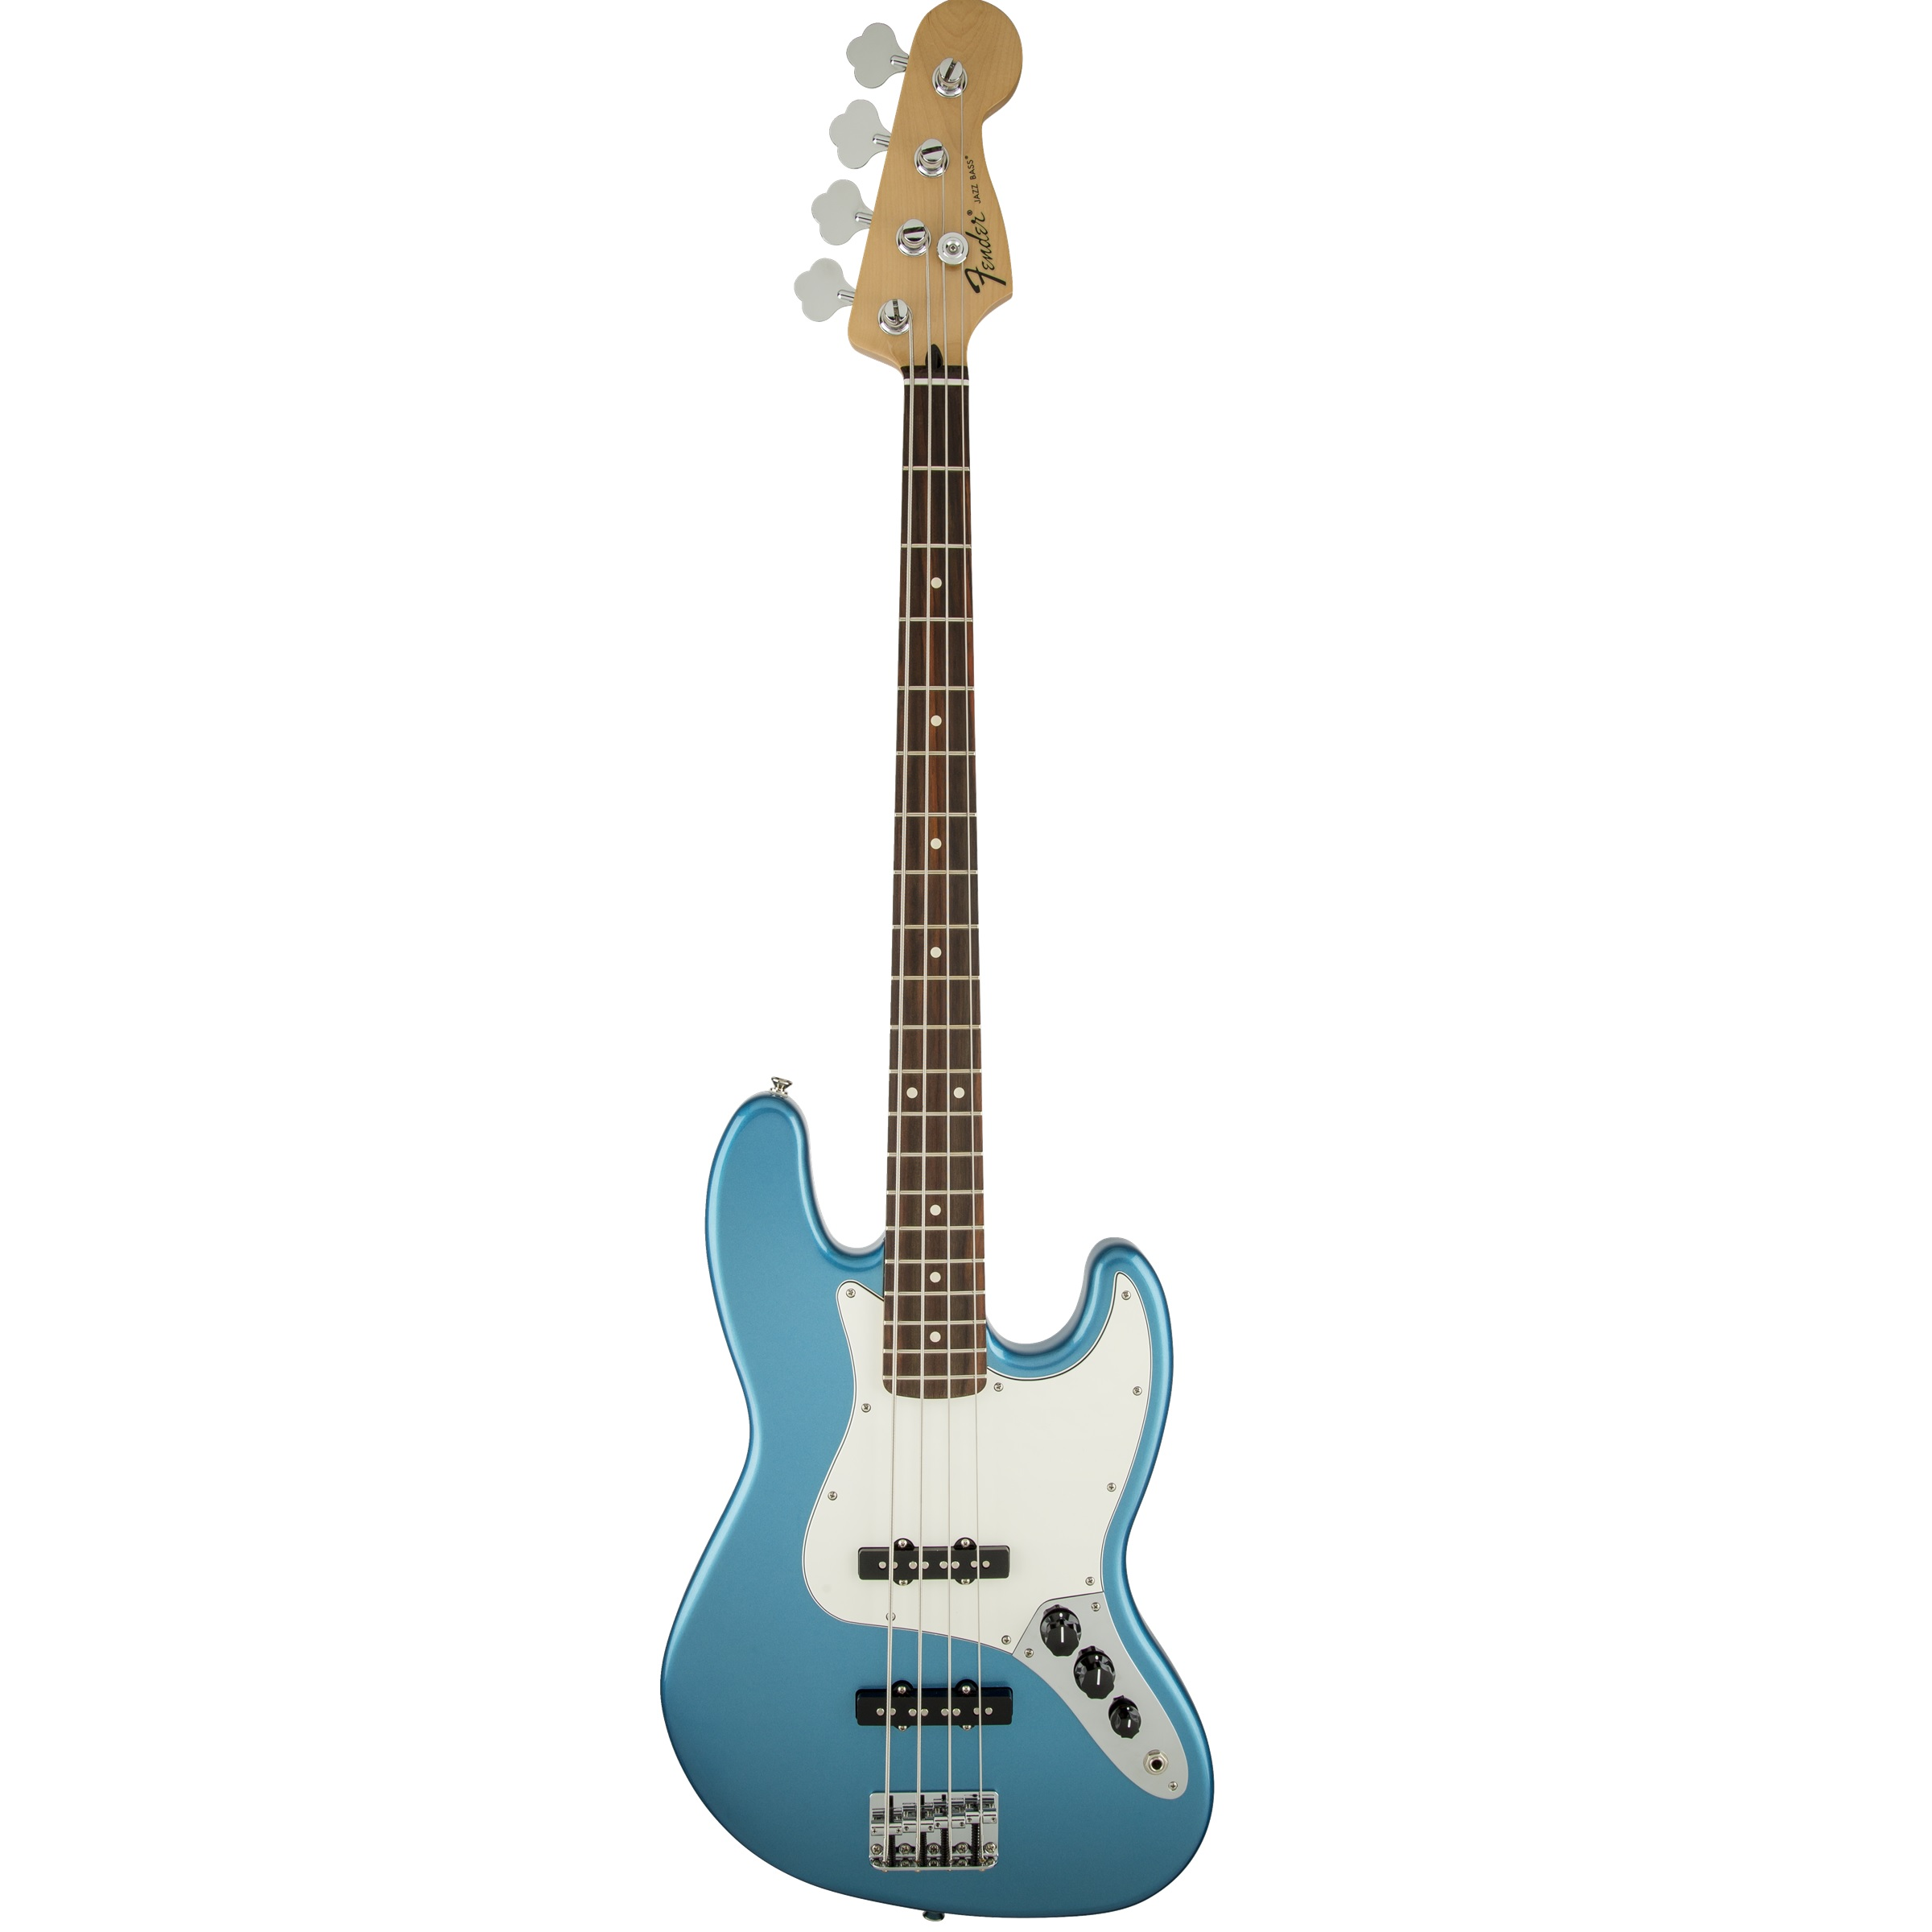 Fender Standard Jazz Bass®